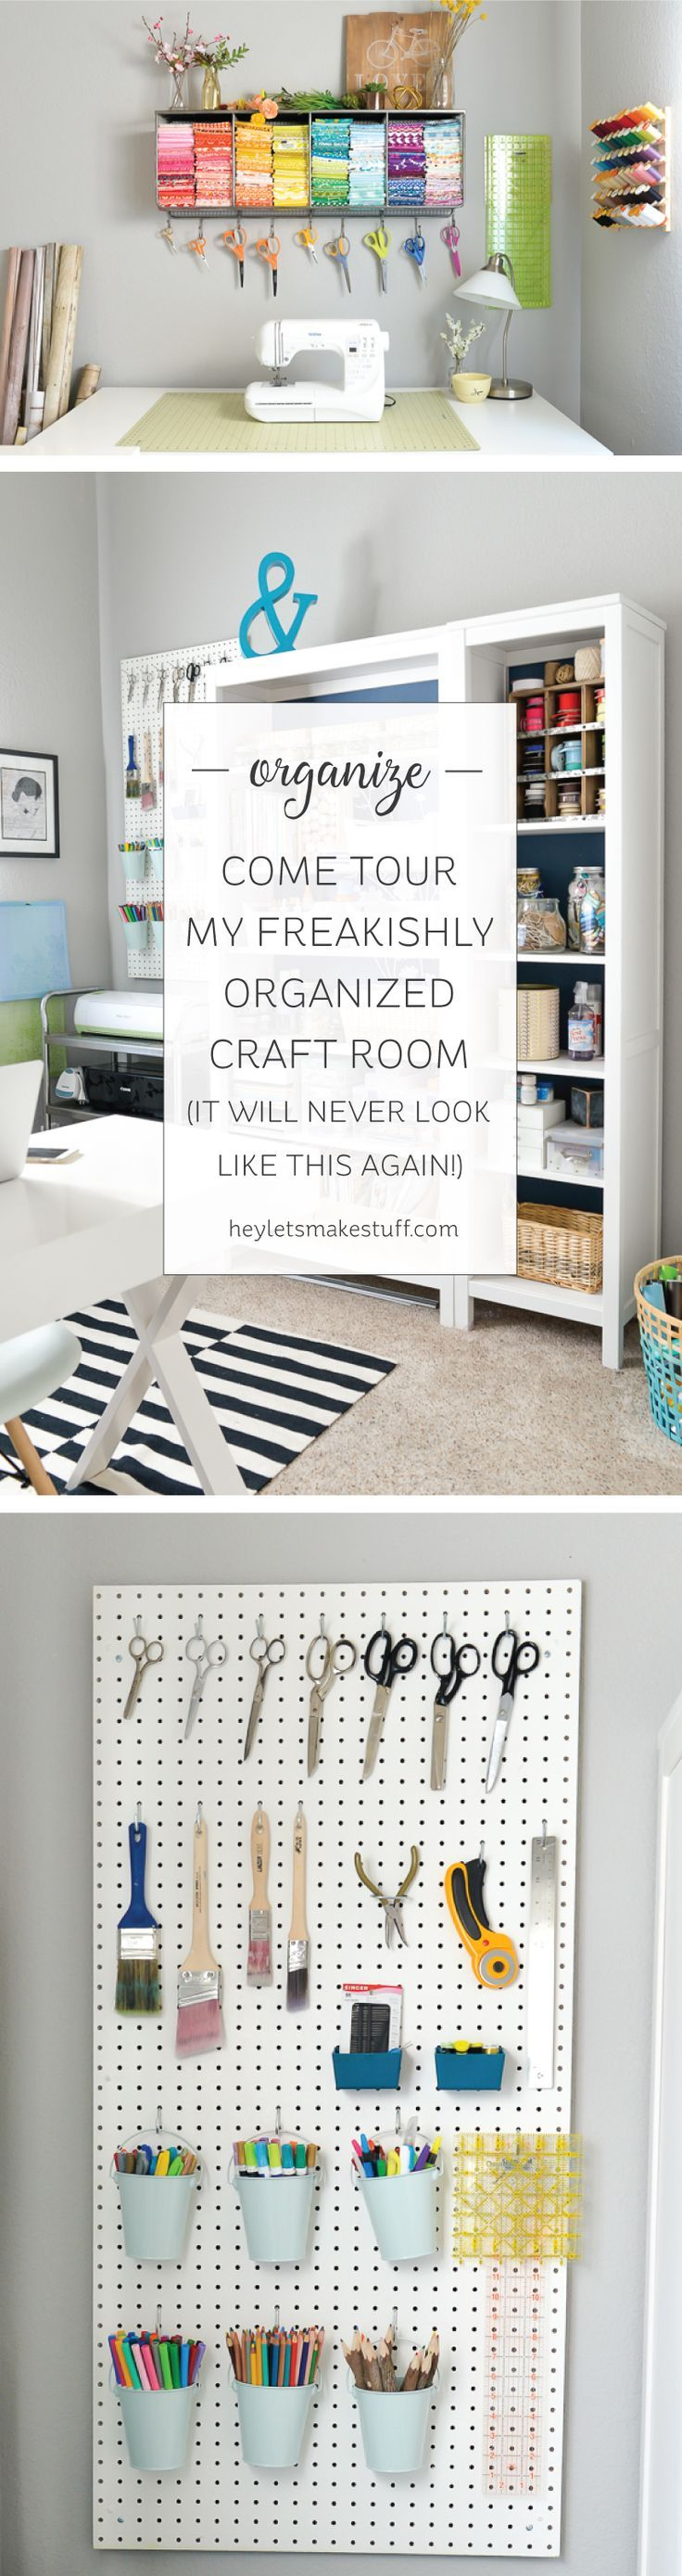 Scrapbook organization ideas - Come And Take A Tour Of My Craft Room I Love My Crafty Space